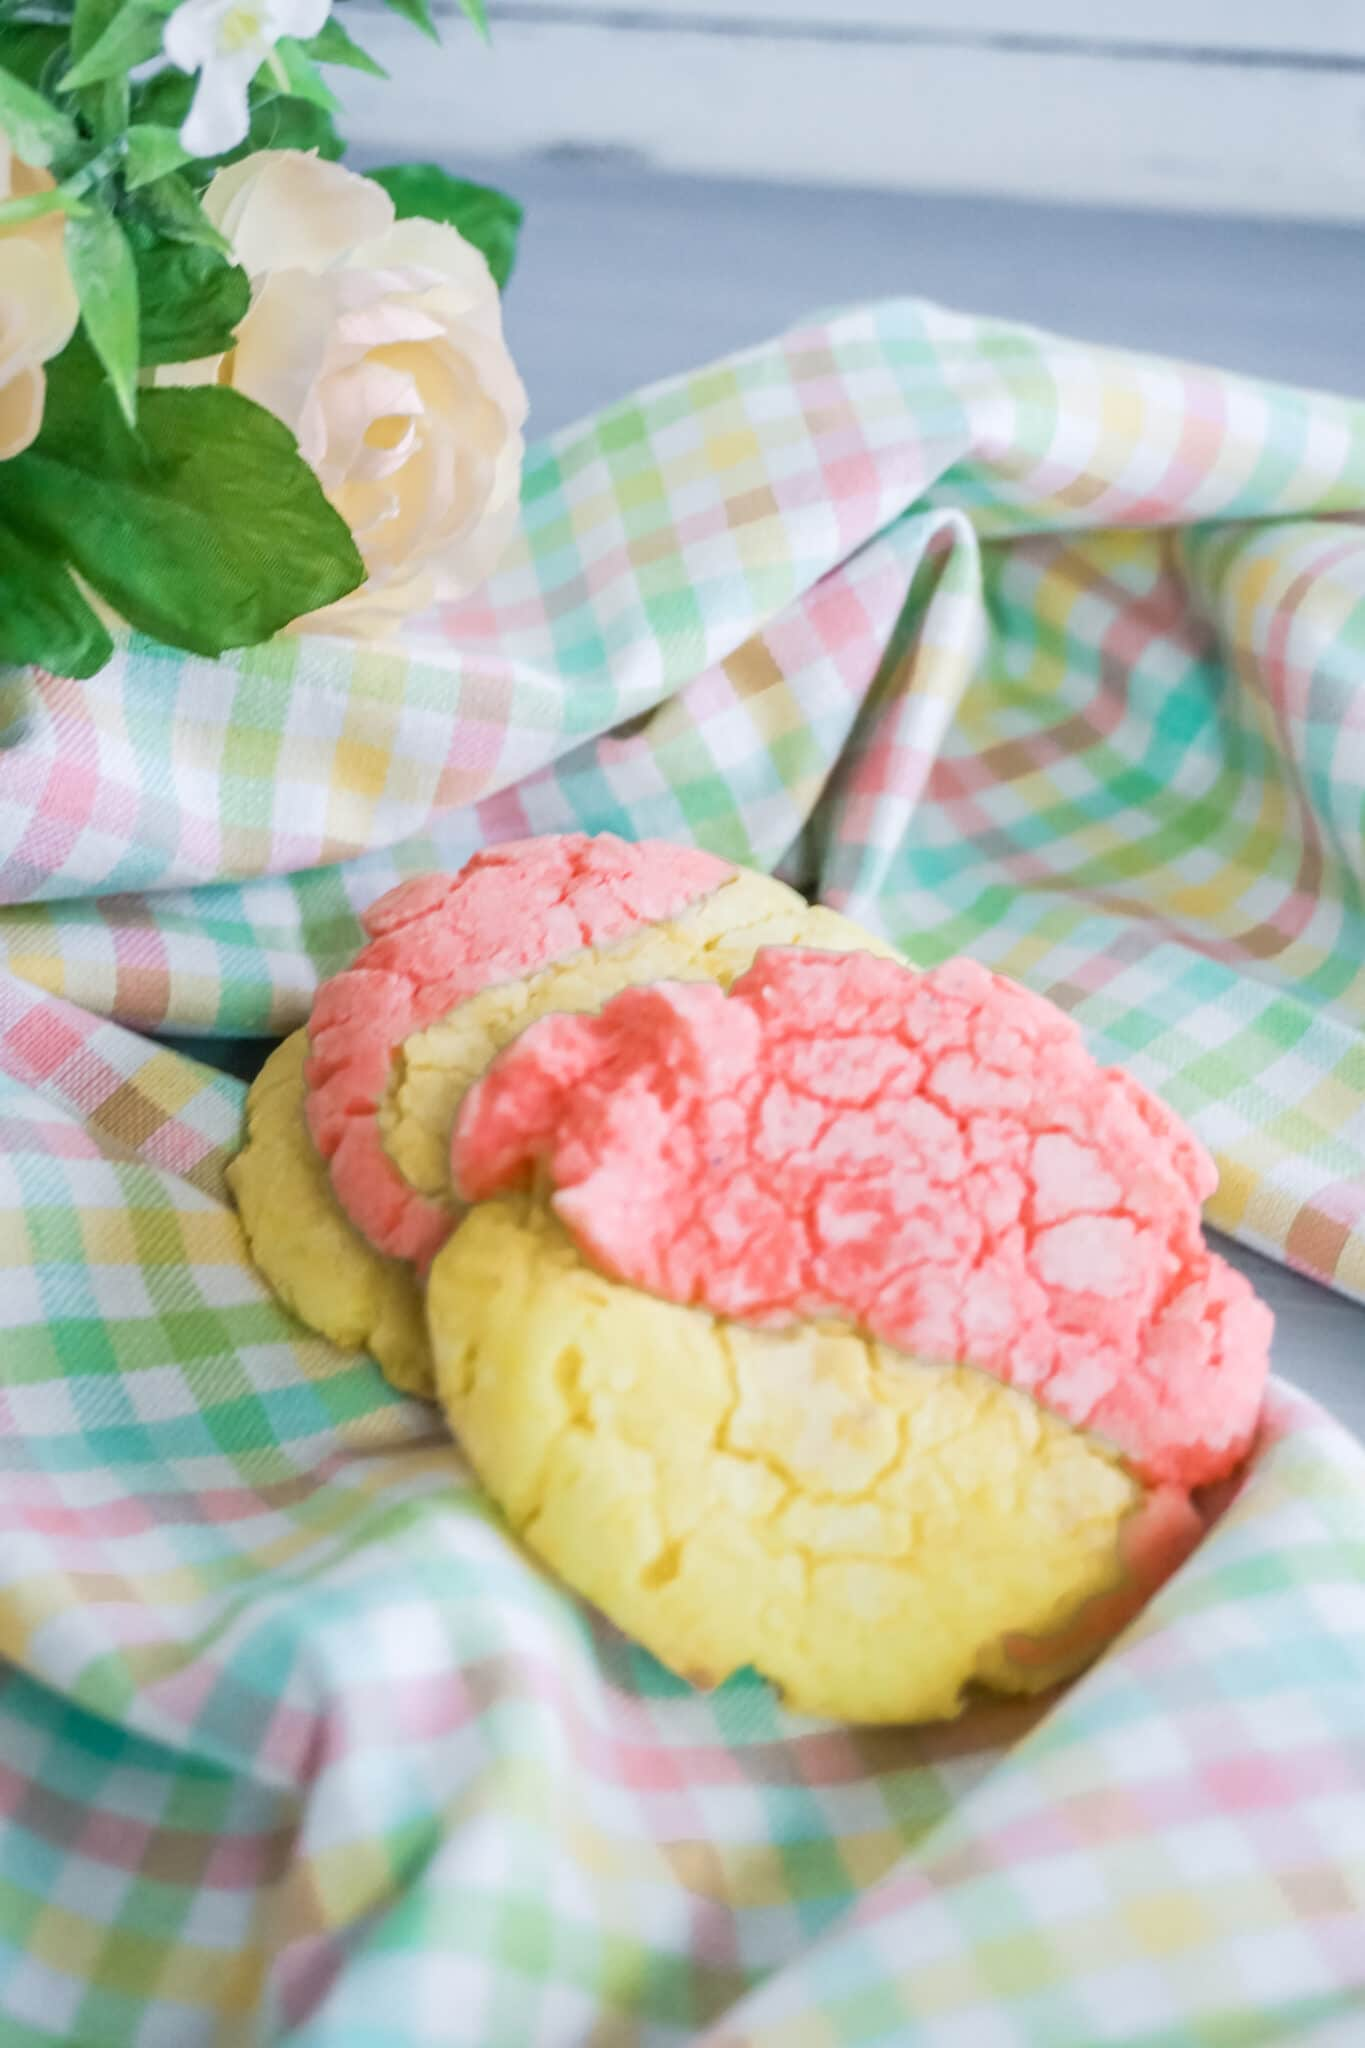 Strawberry Lemonade Crinkle Cookies on pastel colored plaid fabric next to a rose